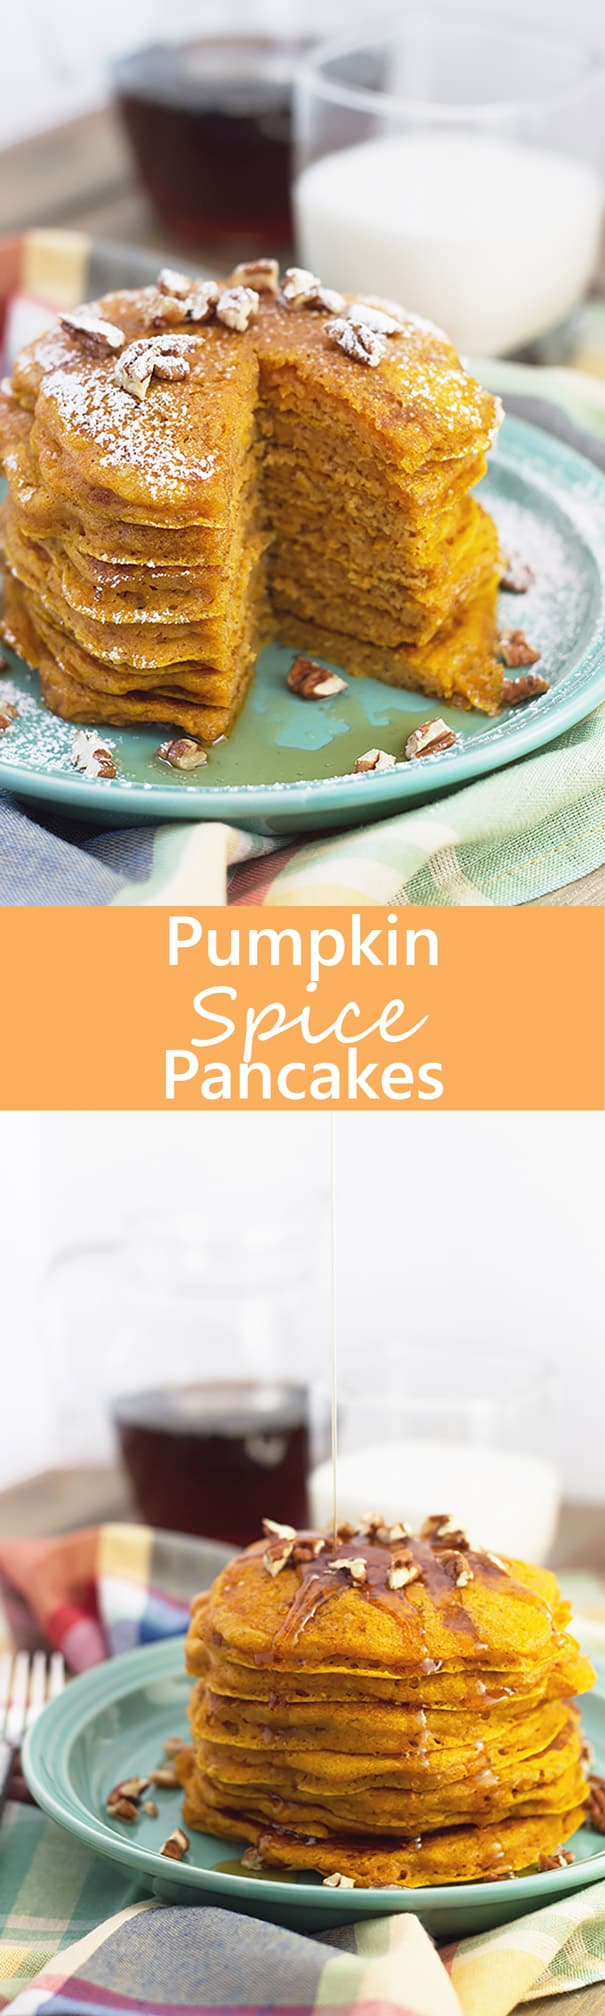 Pumpkin Spice Pancakes- these are everything a pancake should be, tall, soft and fluffy. But they are made extra special with the addition of pumpkin and spice! | Countryside Cravings